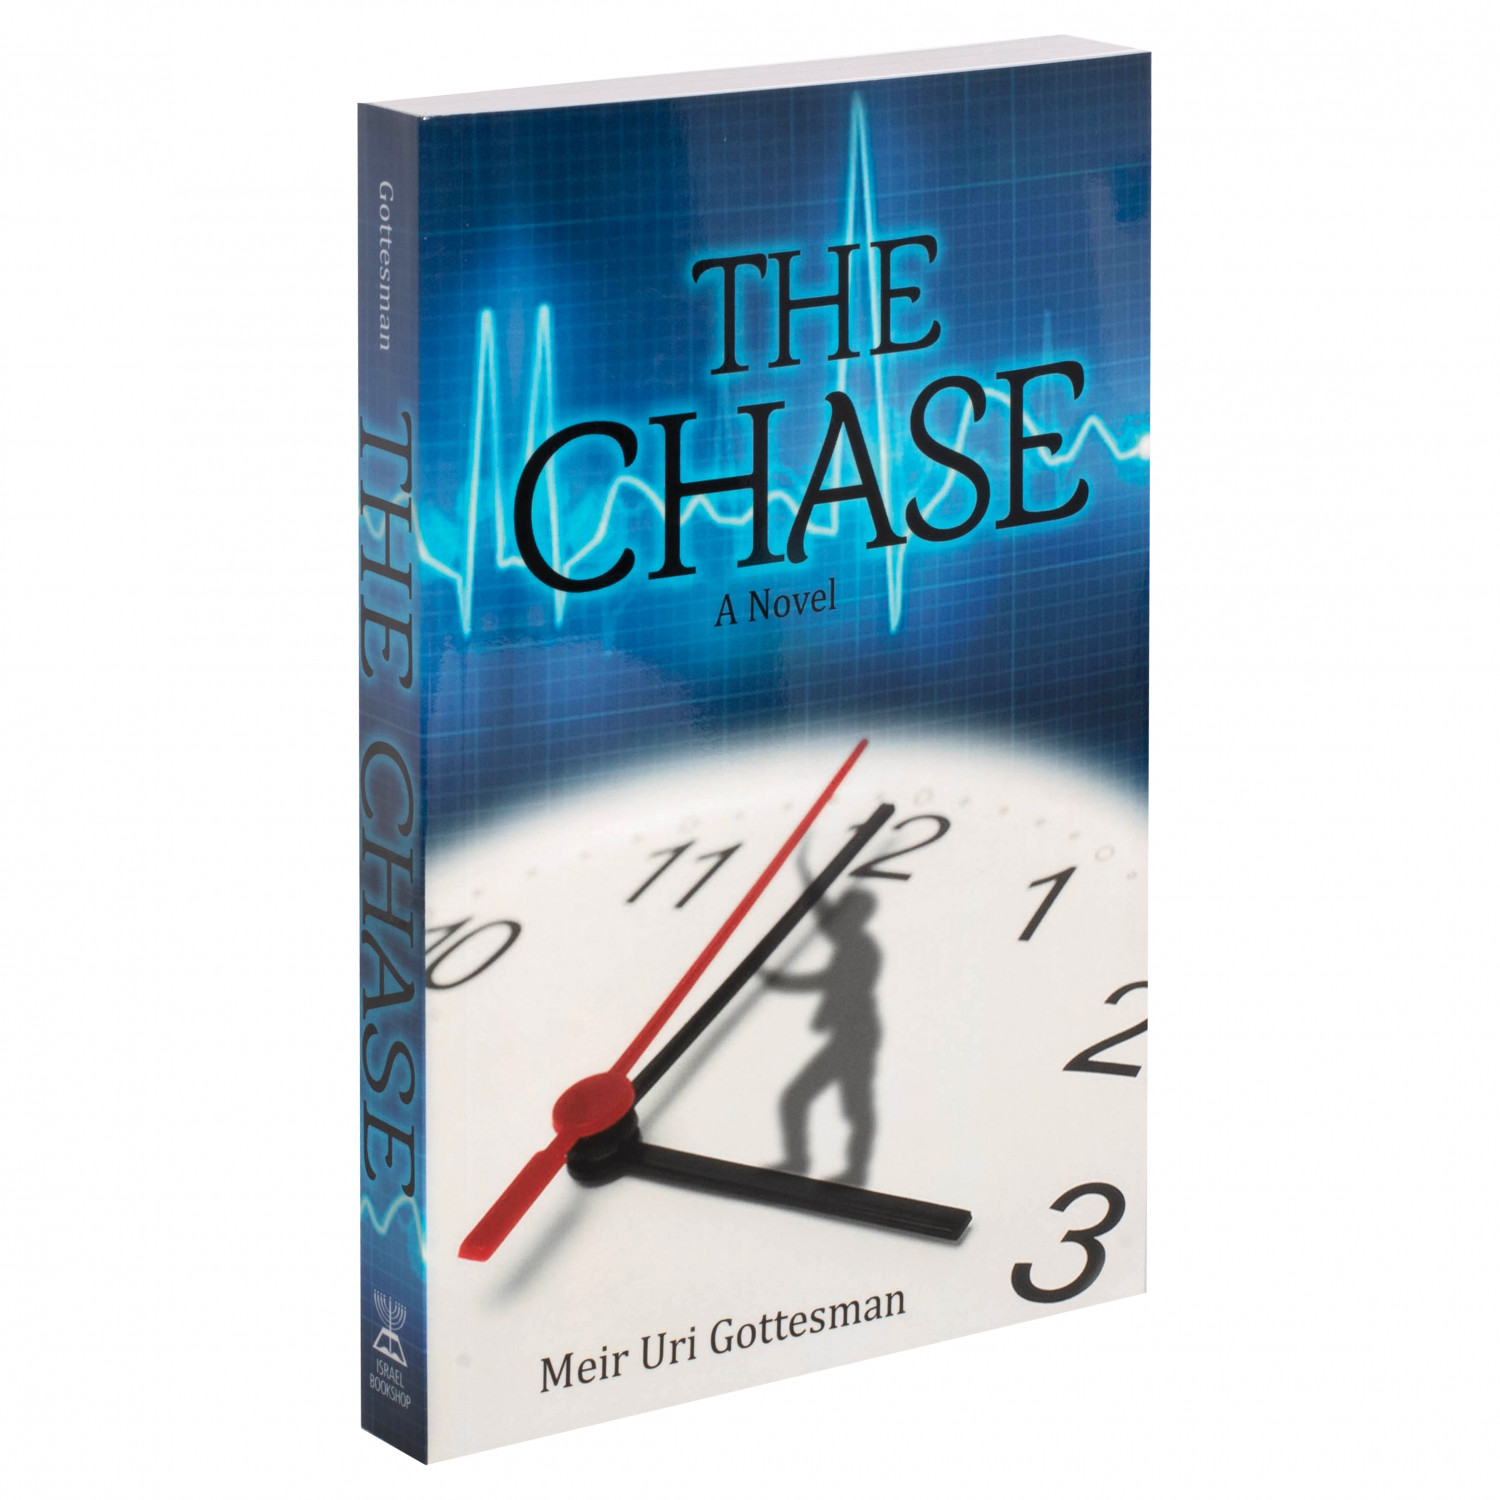 The Chase by Meir Uri Gottesman